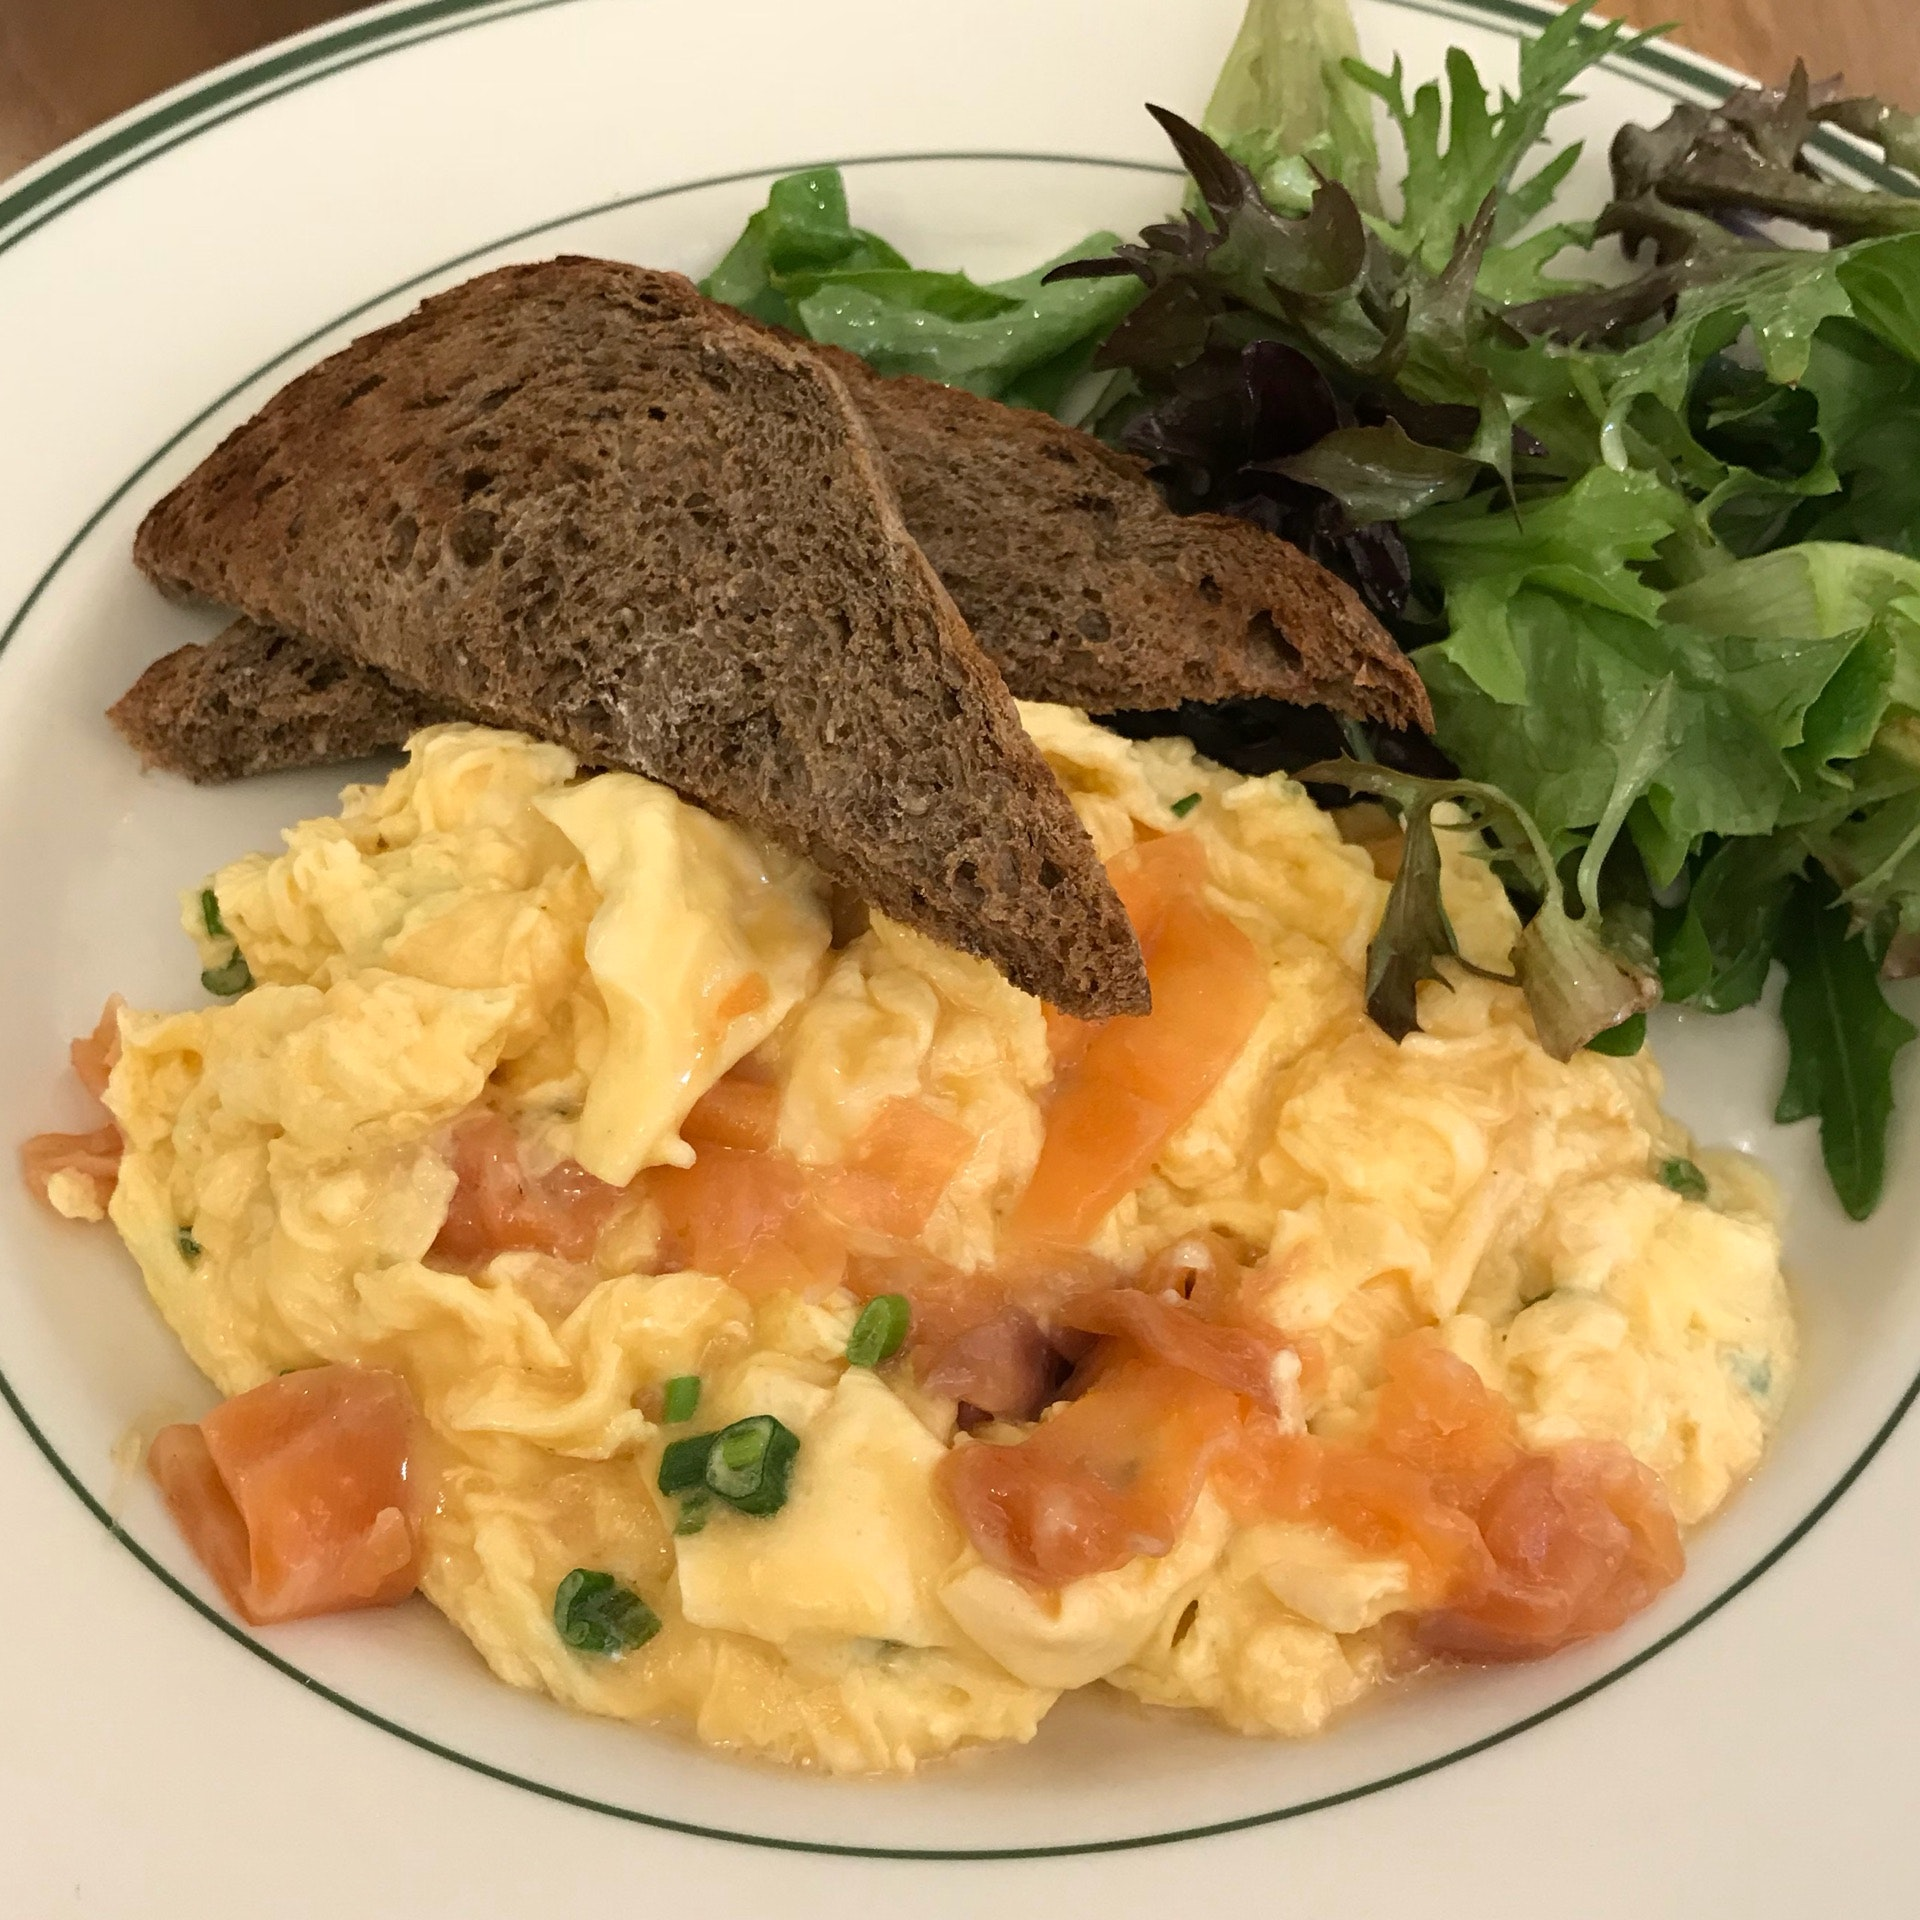 Smoked Salmon Scramble [23.00] soft scrambled eggs, house-smoked salmon, scallion cream cheese, with dressed greens